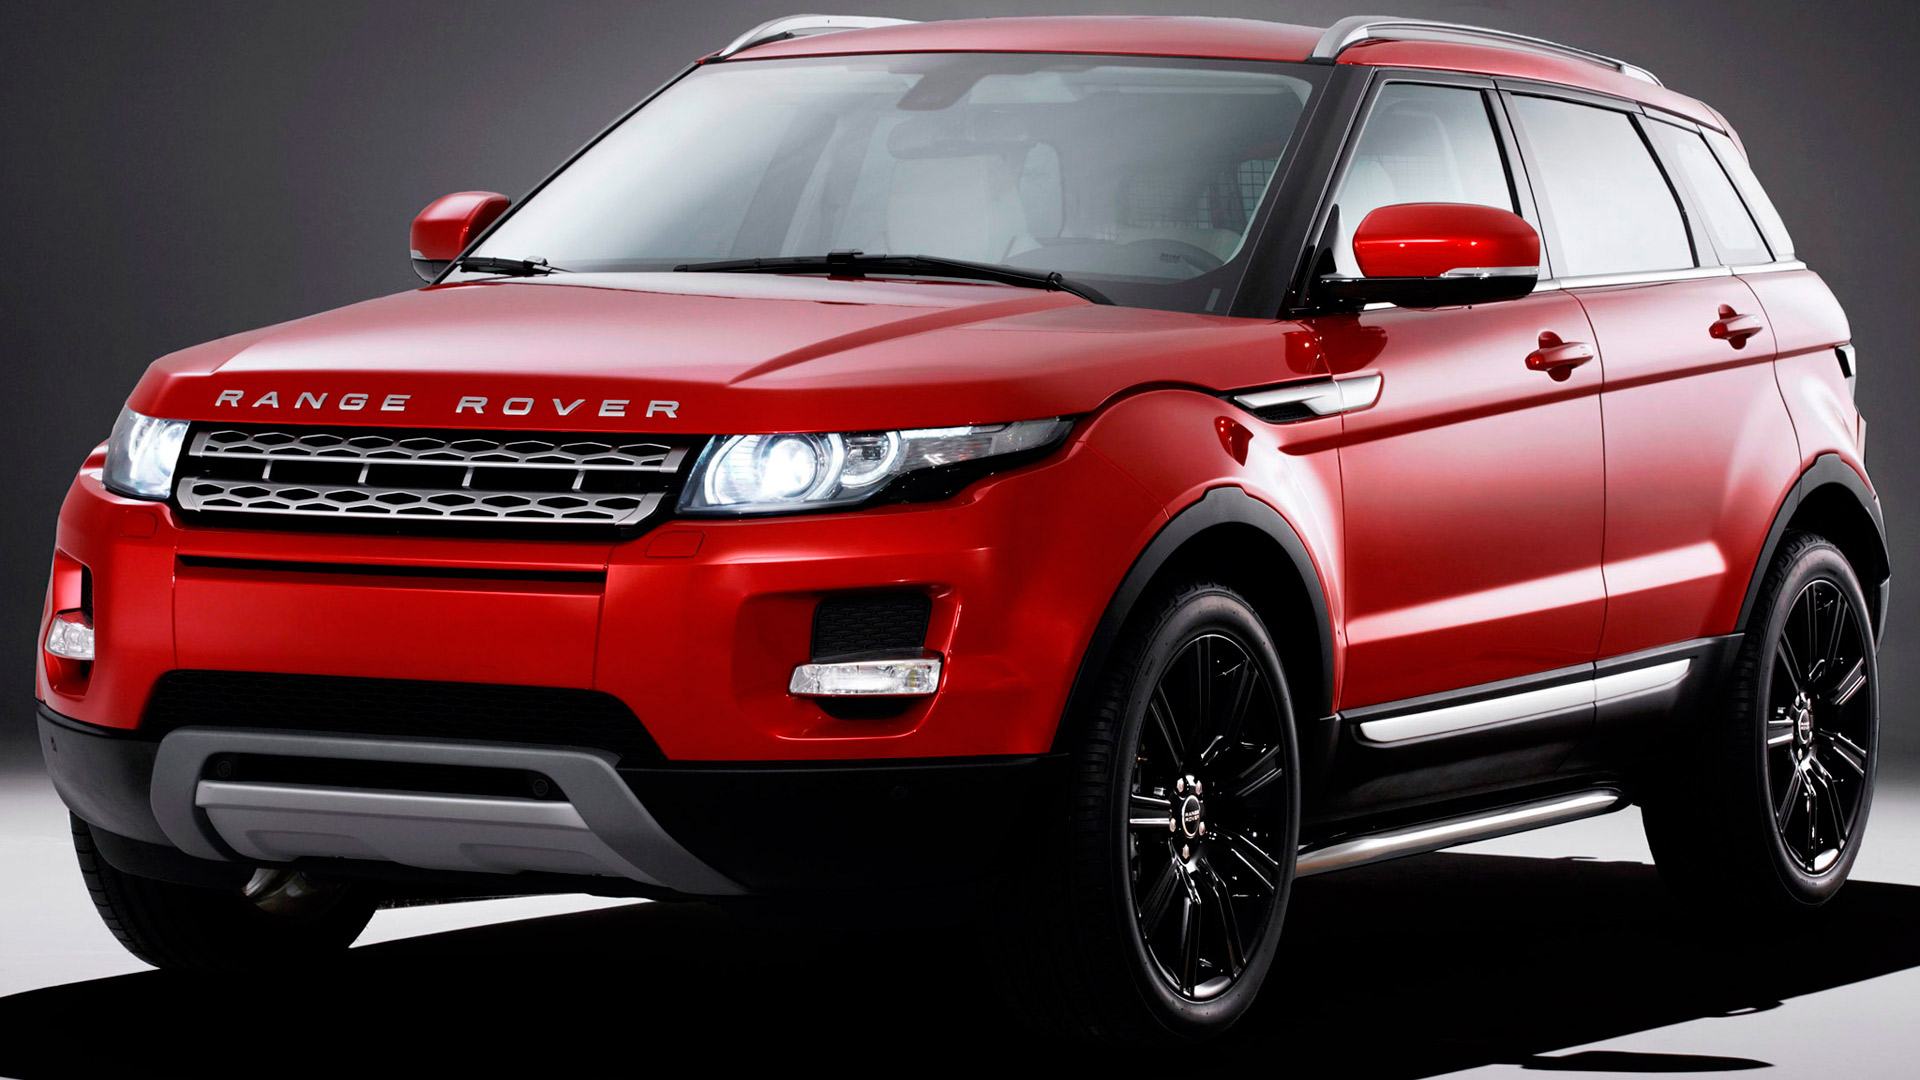 2013 Land Rover Discovery 4 Pictures further 1 0 6845 3 in addition Landie likewise HD Land Rover Modele Range Rover Evoque Ember Edition Vue Interieur Img Land Rover Range Rover Evoque Ember Edition 501 moreover Hse. on land rover range